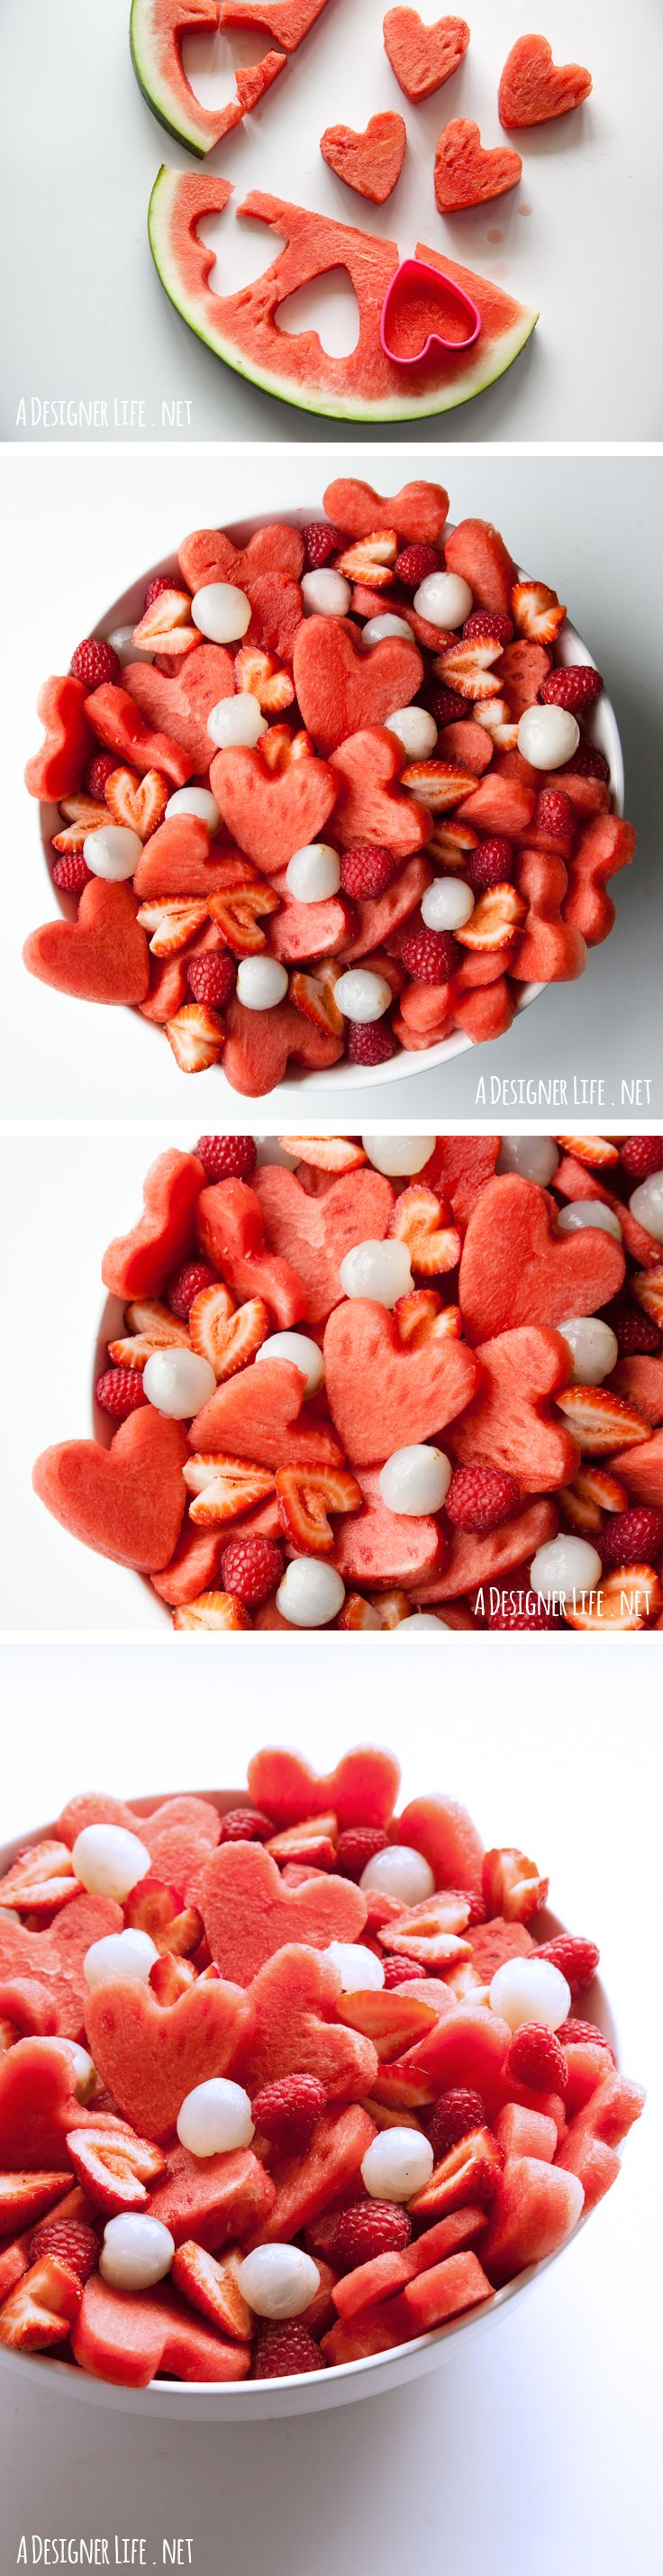 手机壳定制air jordan  retro high gucci Watermelon Heart Fruit Salad See it here http  www adesignerlife net food design  easy last minute valentines day recipes